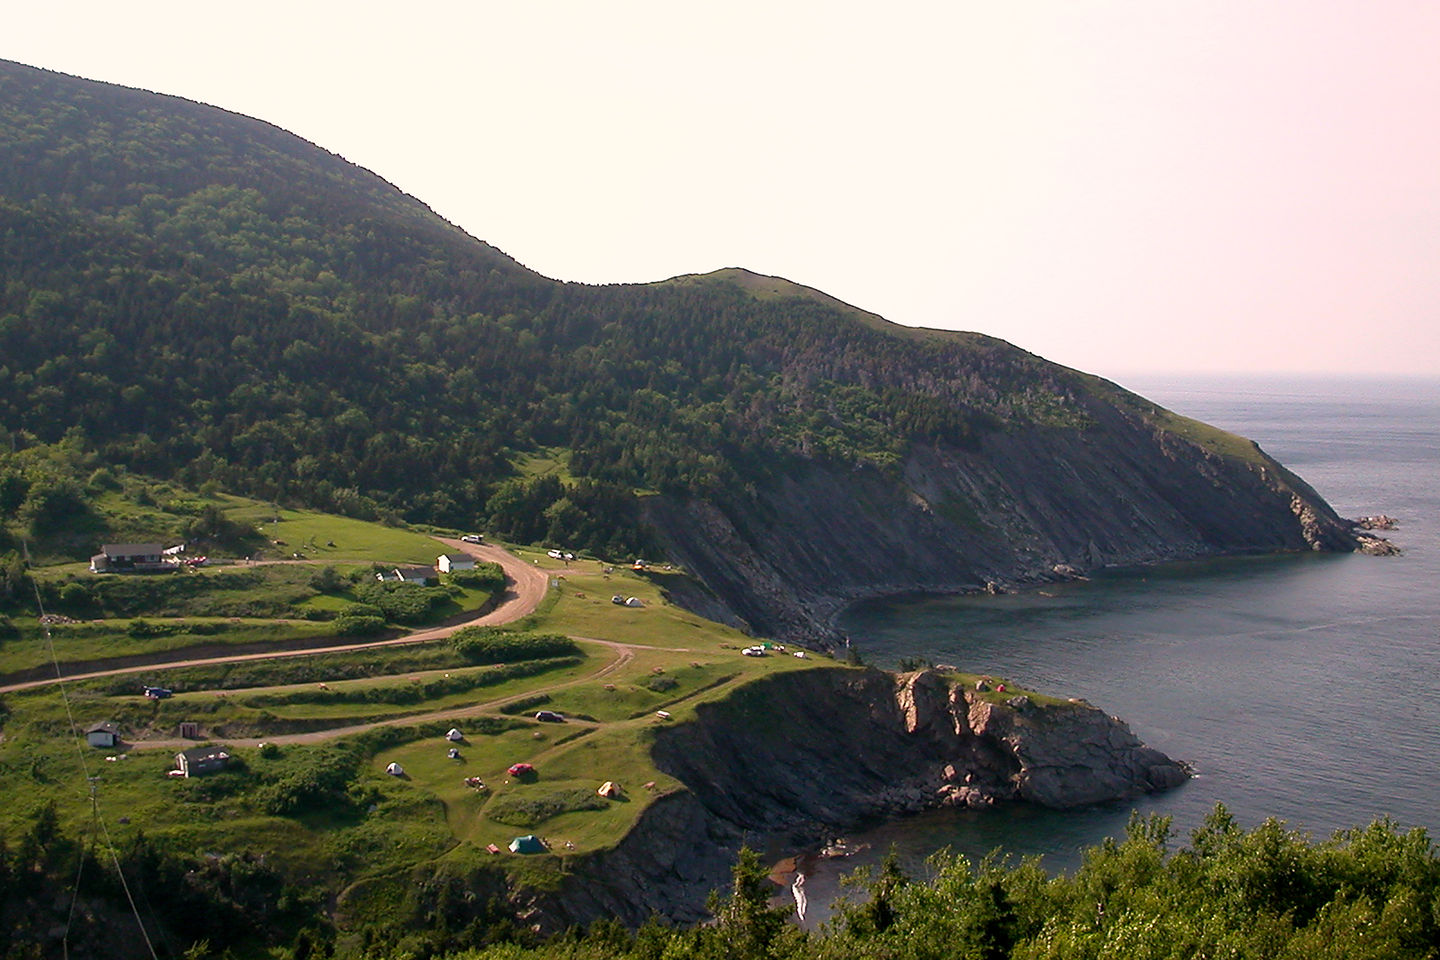 Approach to Meat Cove